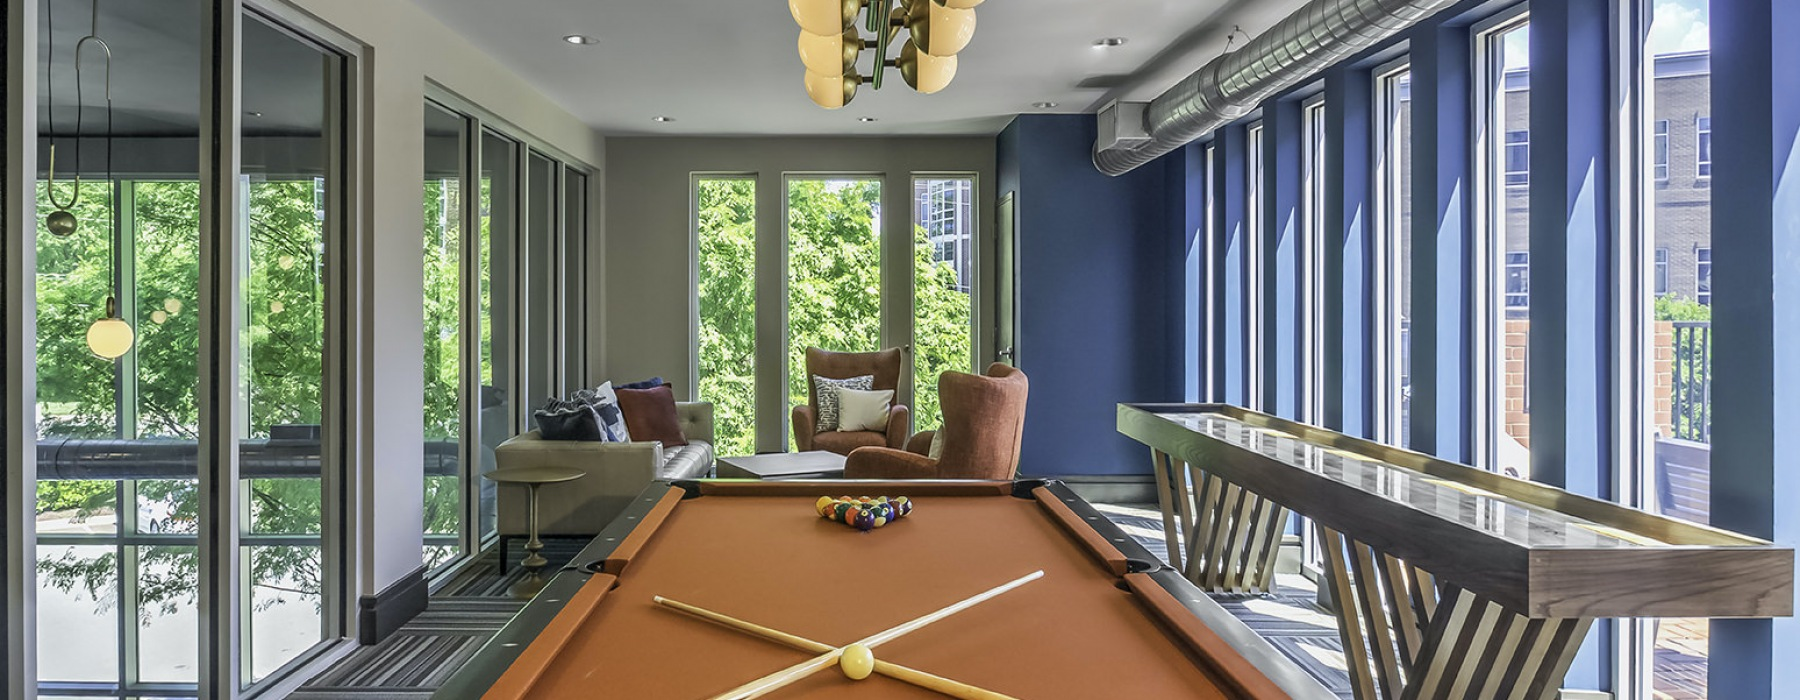 Pool table in resident lounge with industrial style